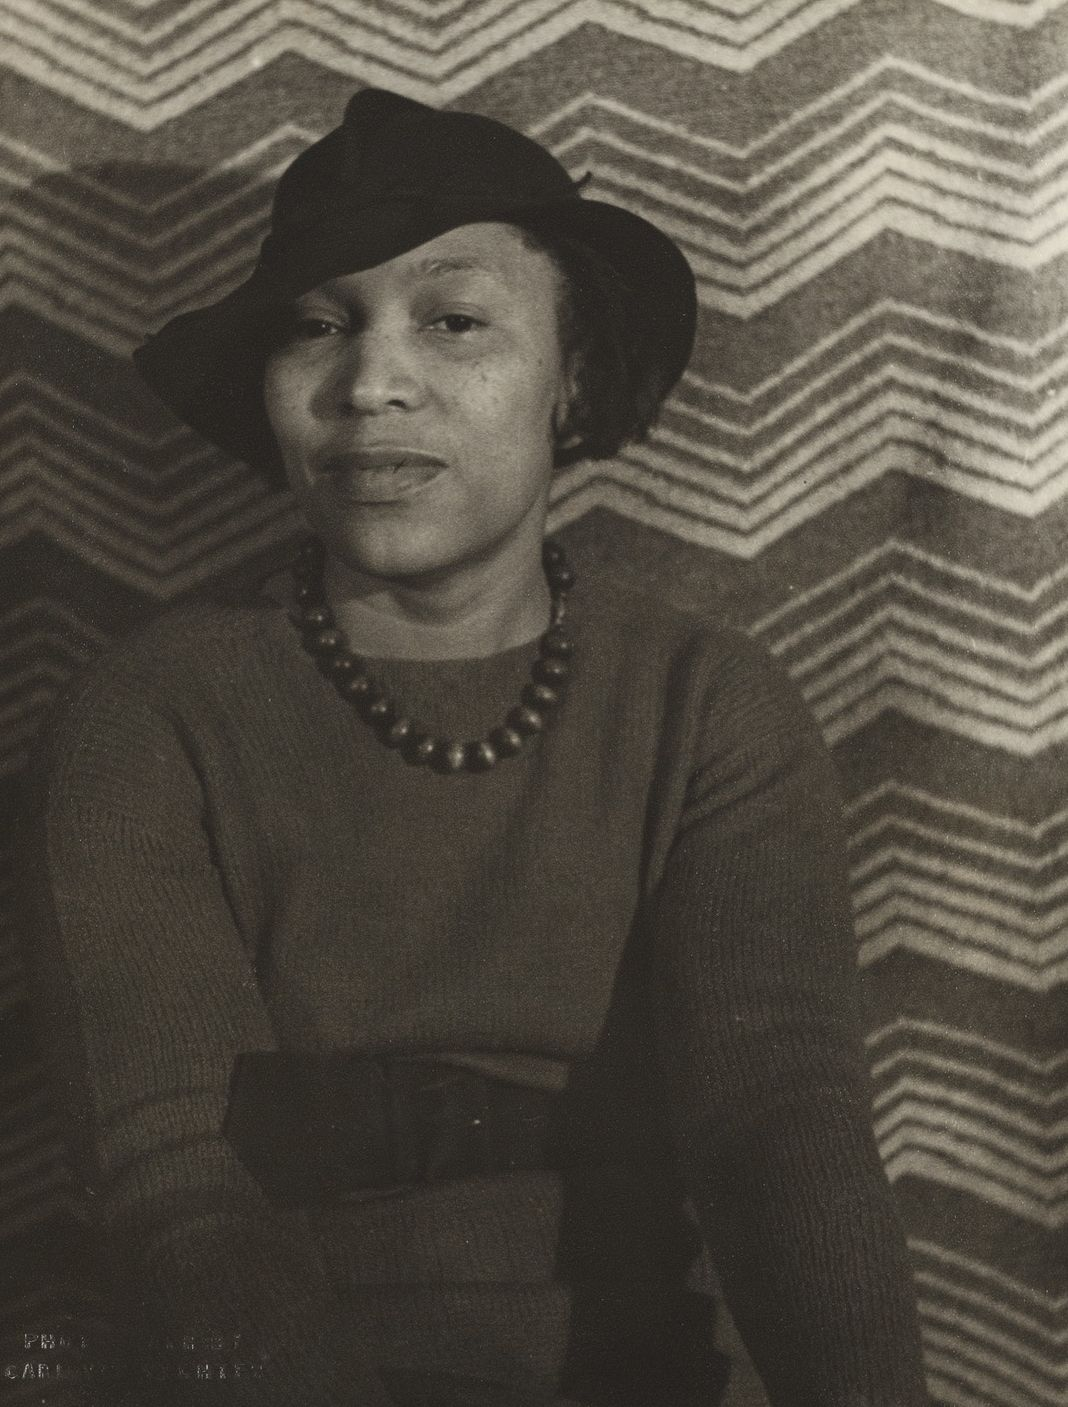 zora neal hurston Celebrated primarily for her creative literary endeavors and vibrant personality as one of the central figures of the harlem renaissance, zora neale hurston's work as an anthropologist tends.